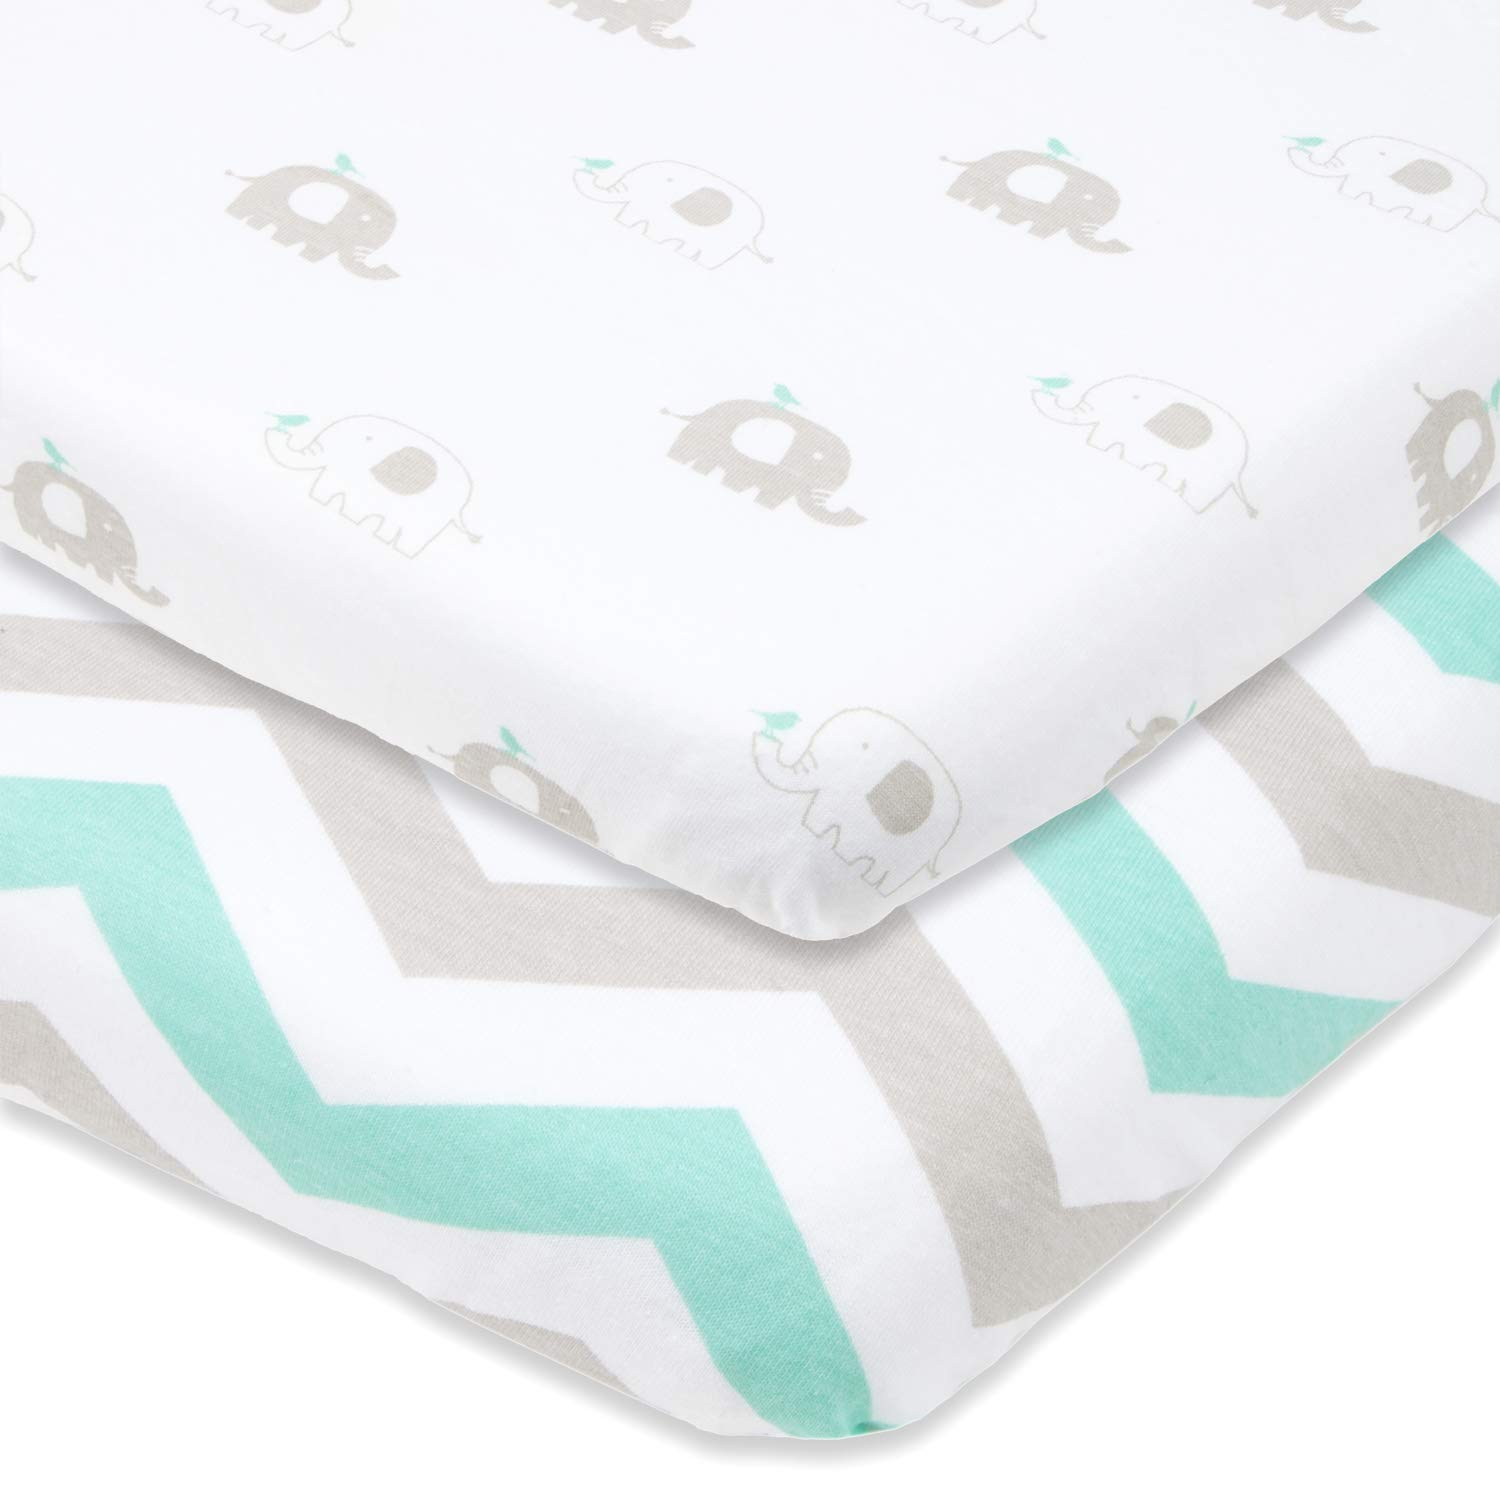 Cuddly Cubs Pack n Play Playard Sheets - Set of 2 Jersey Cotton Fitted Sheets for Mini/Portable Crib Mattress - Gray and Mint with Chevron & Baby Elephants - TOP QUALITY Nursery Bedding for Boy/Girl CC2438MINT